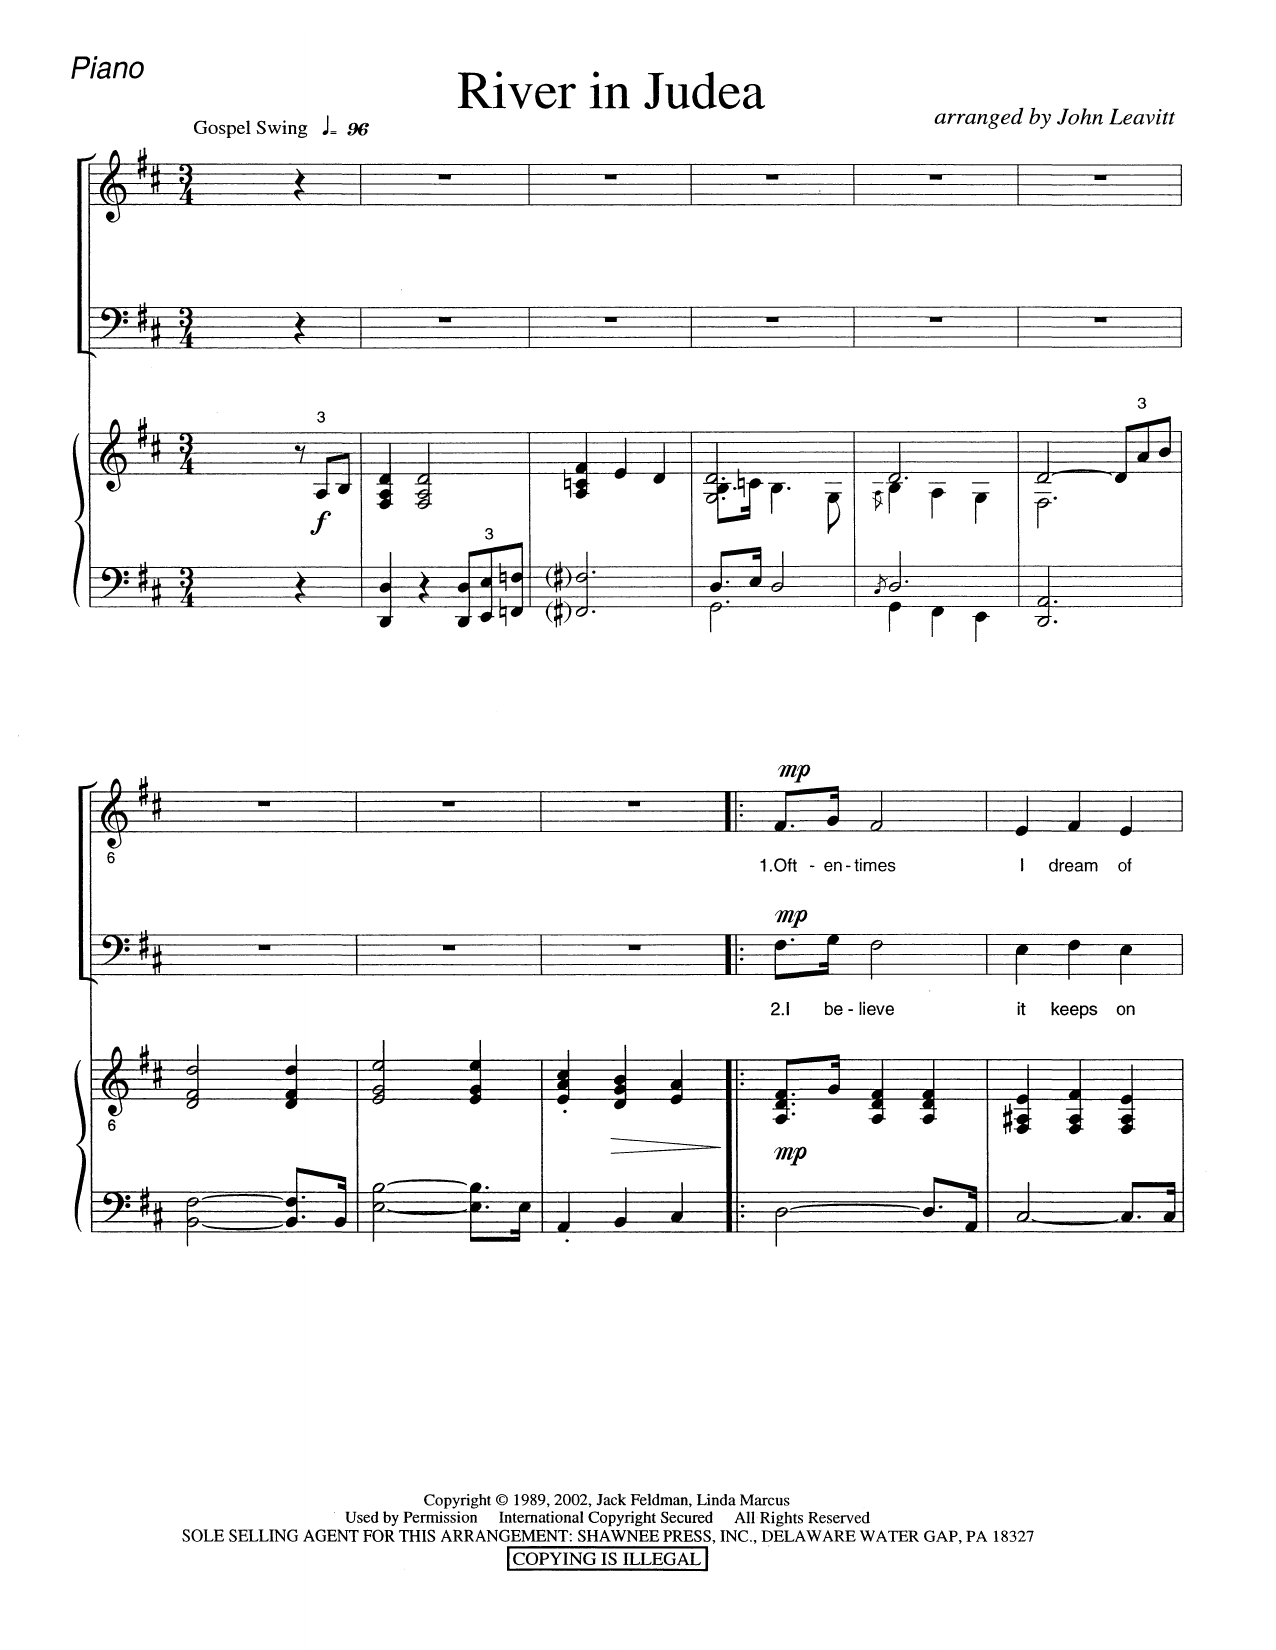 River in Judea - Piano Sheet Music